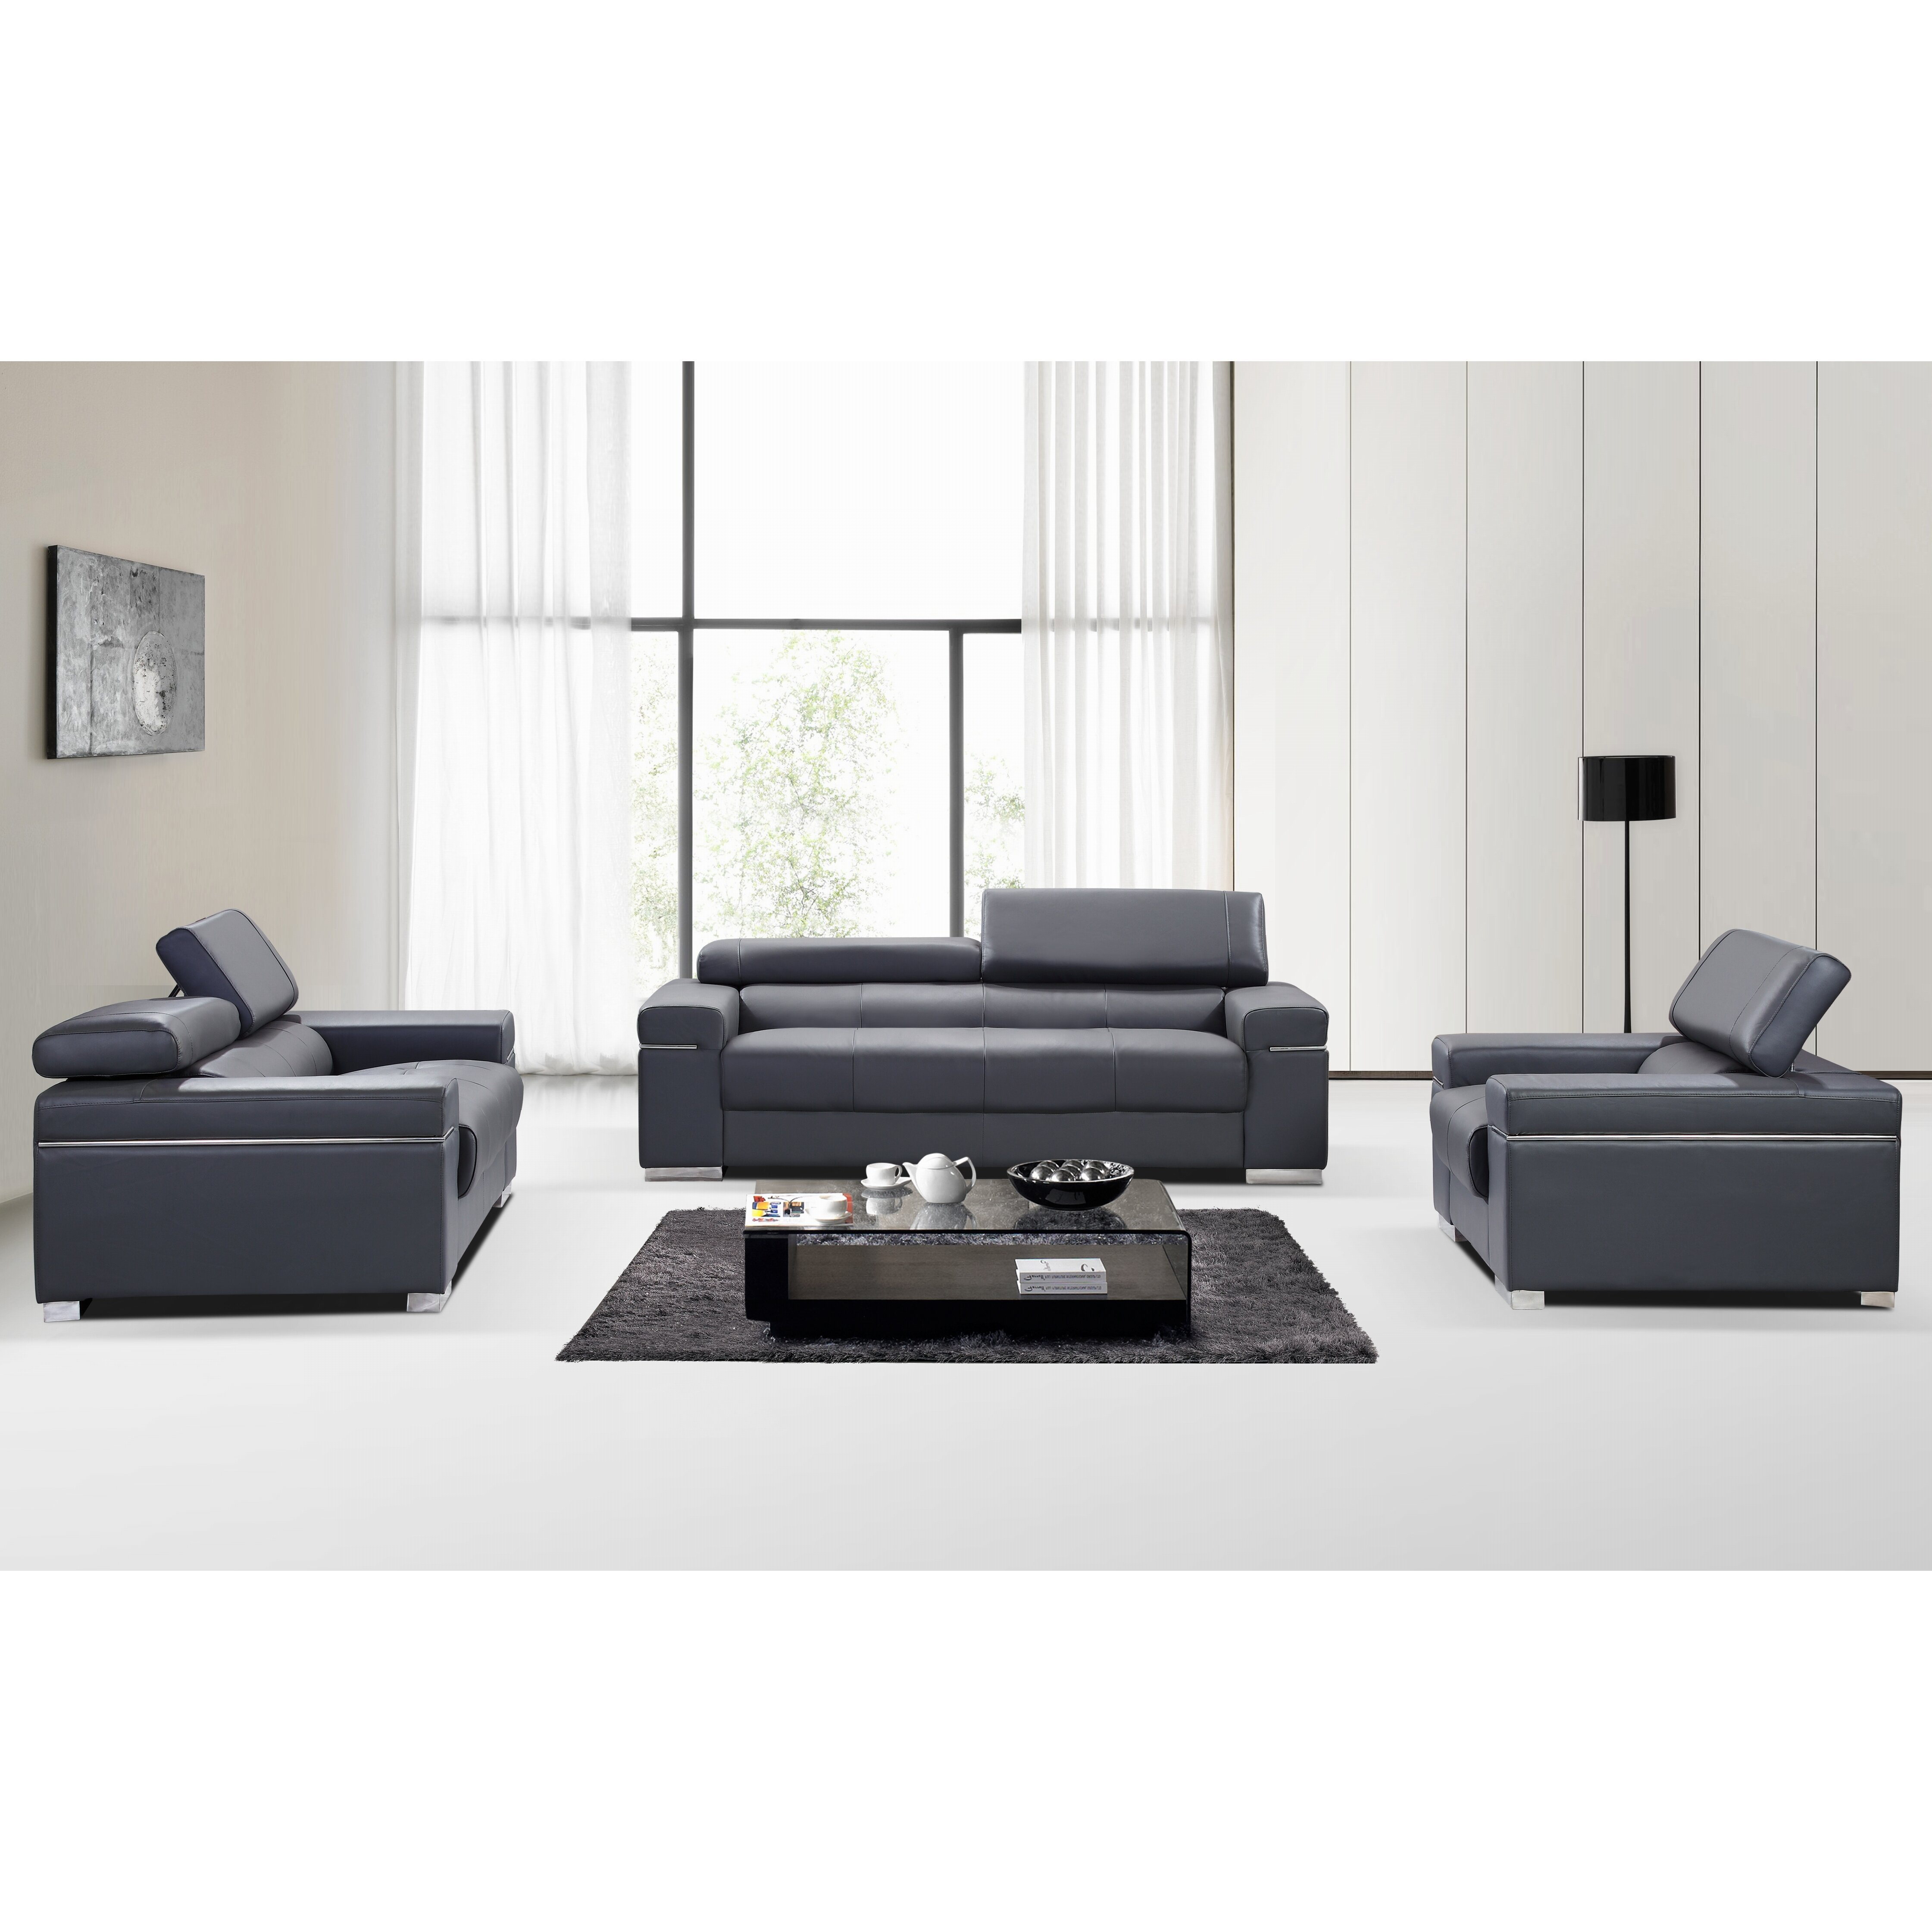 Logan Sectional Sofa Set By Ashley Furniture